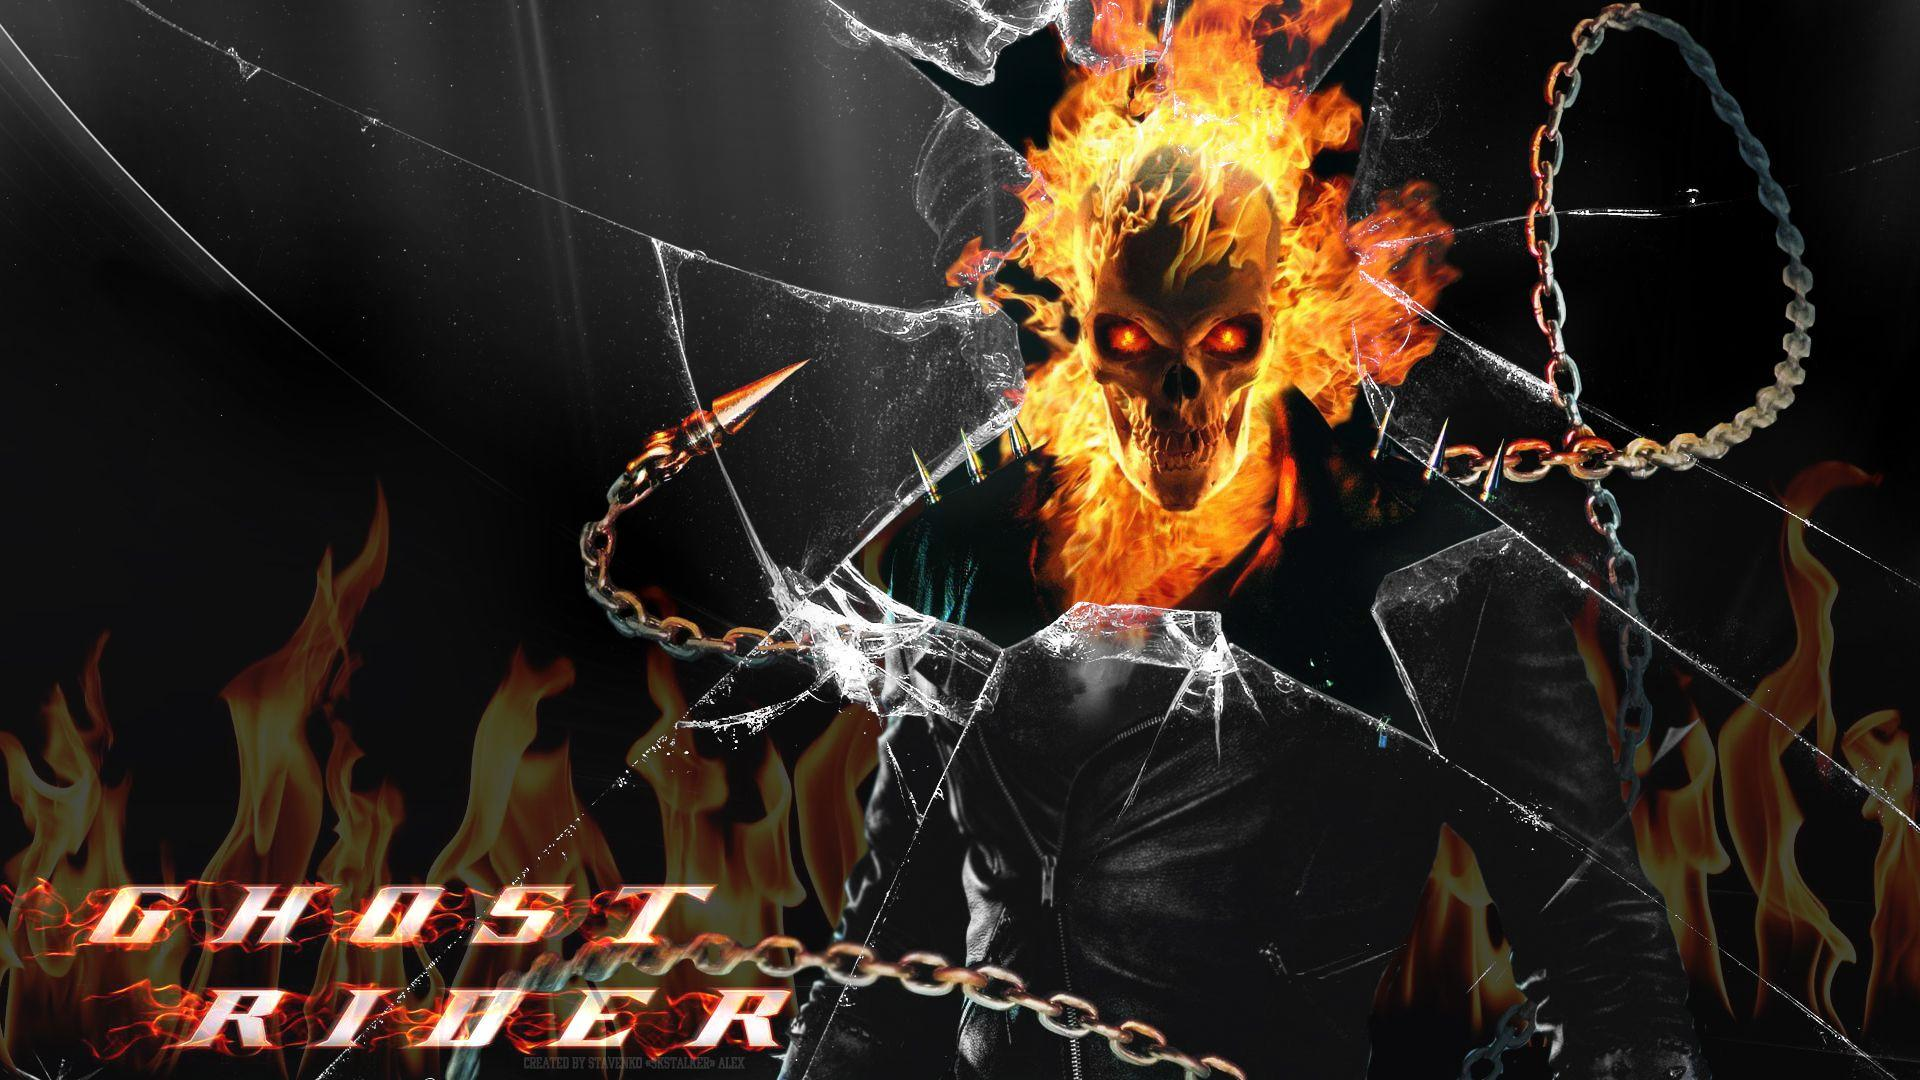 Ghost Rider Wallpapers 16